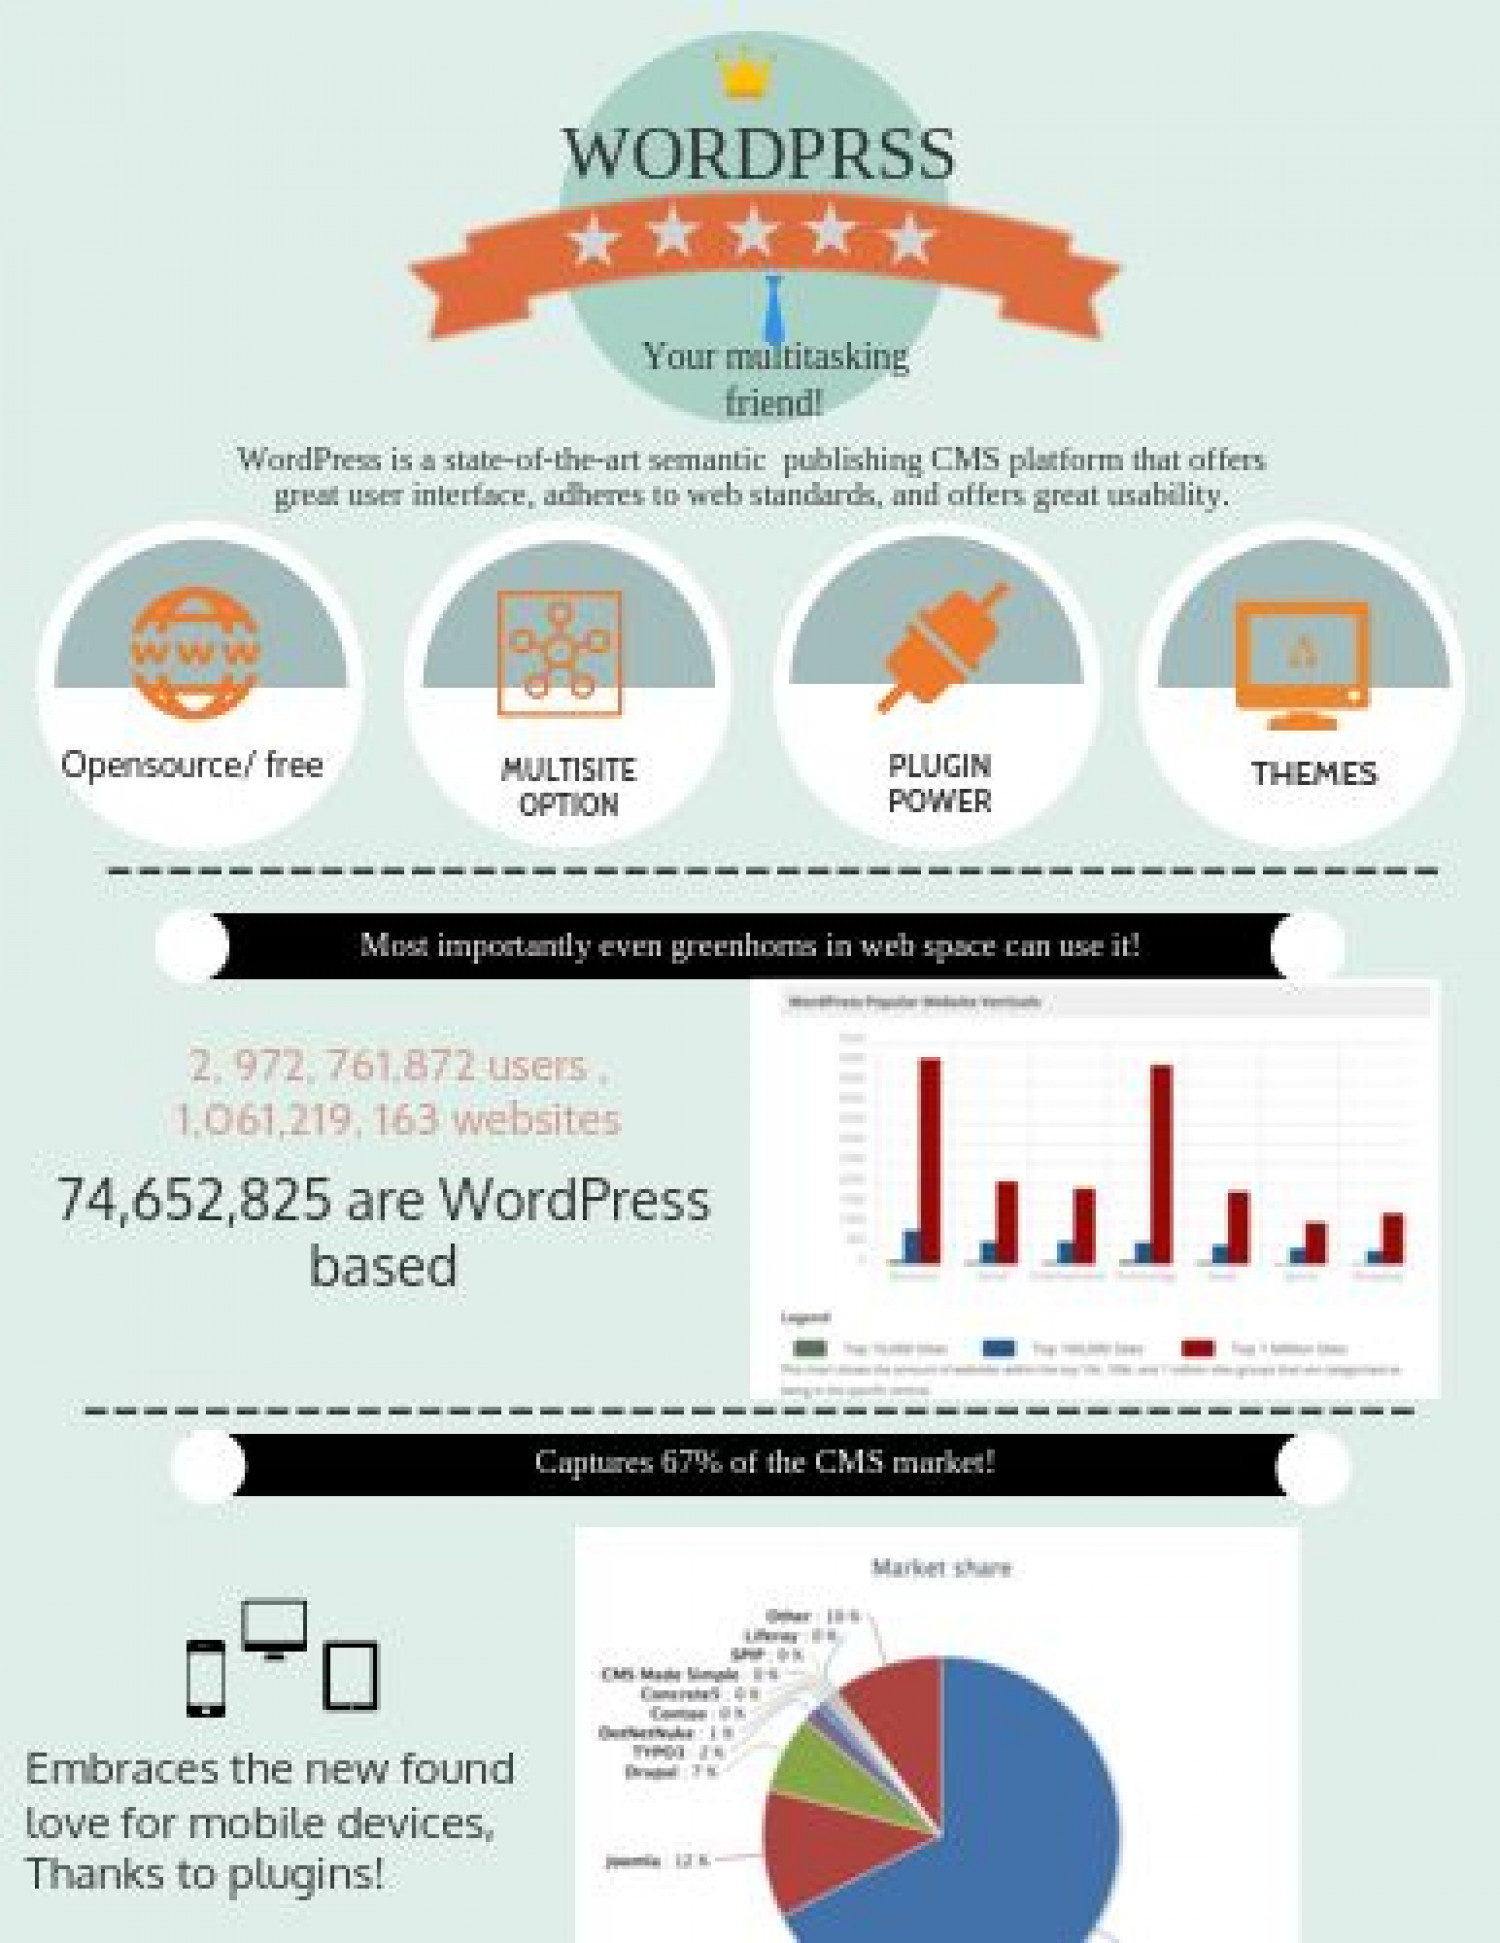 WordPress - Best Ever CMS Platform on Earth Infographic